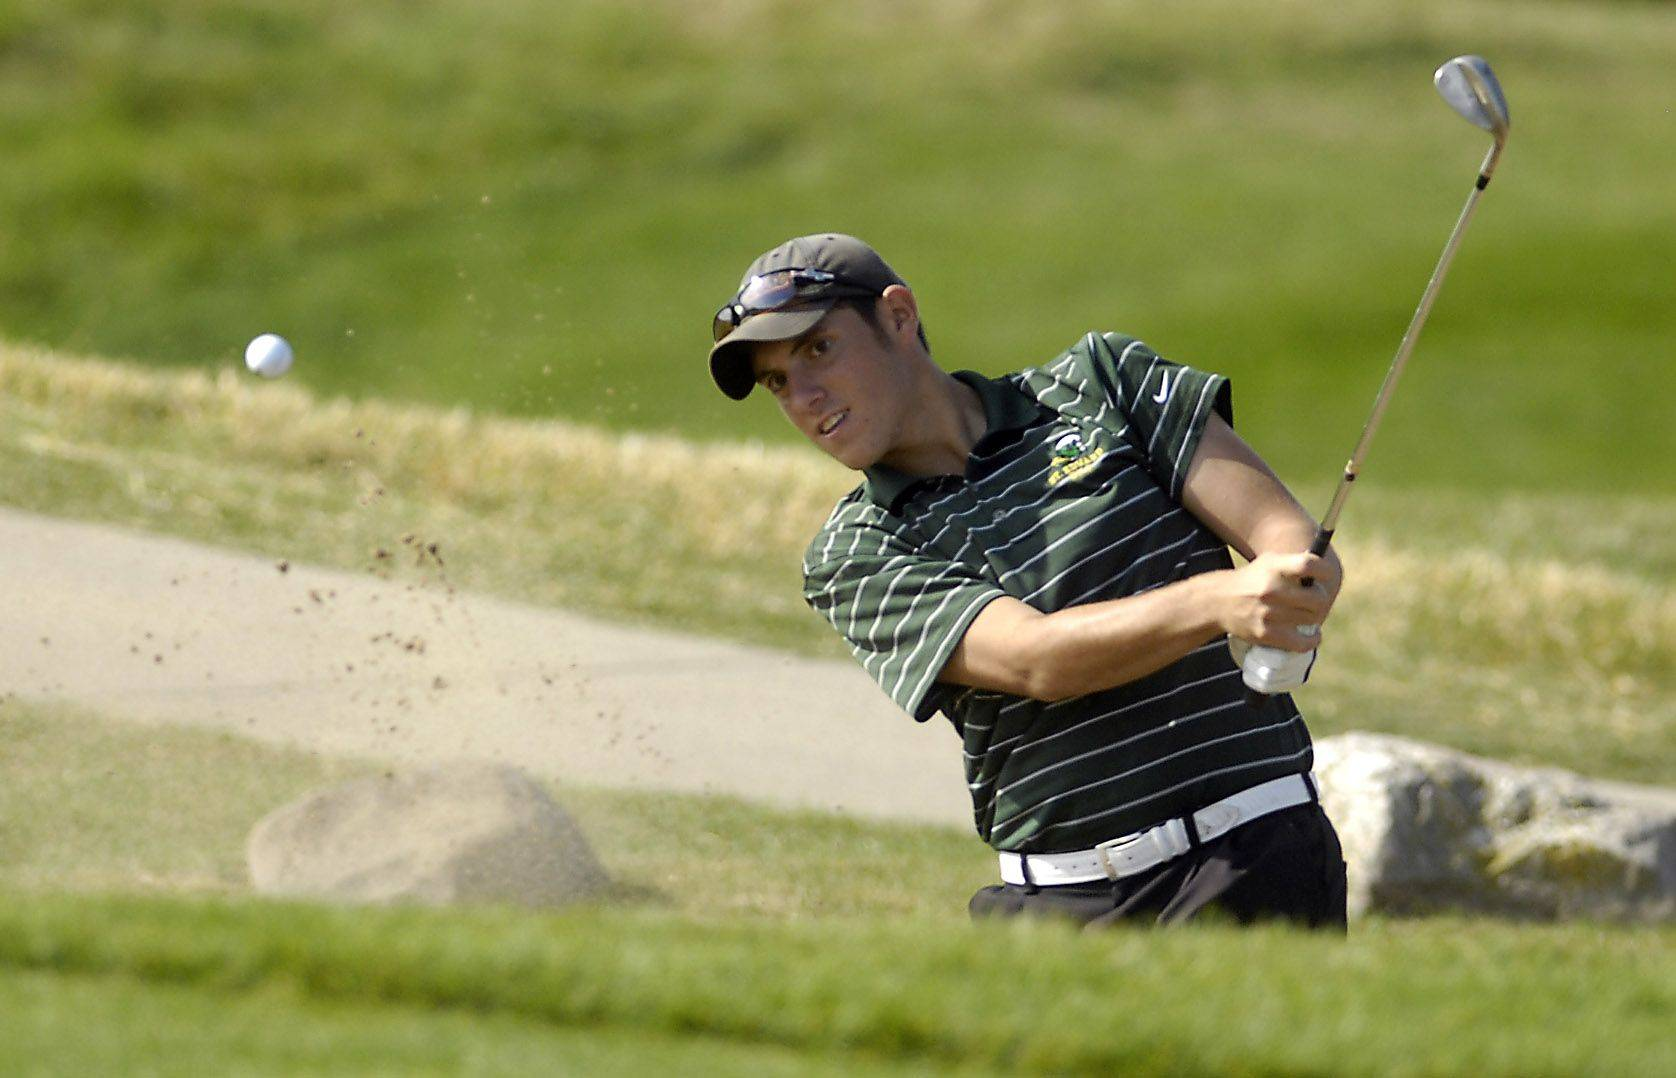 Michael Holevas of St. Edwards chips out of the sand during the Westminster Christian Class 1A boys golf sectional at Golf Club of Illinois in Algonquin Monday.